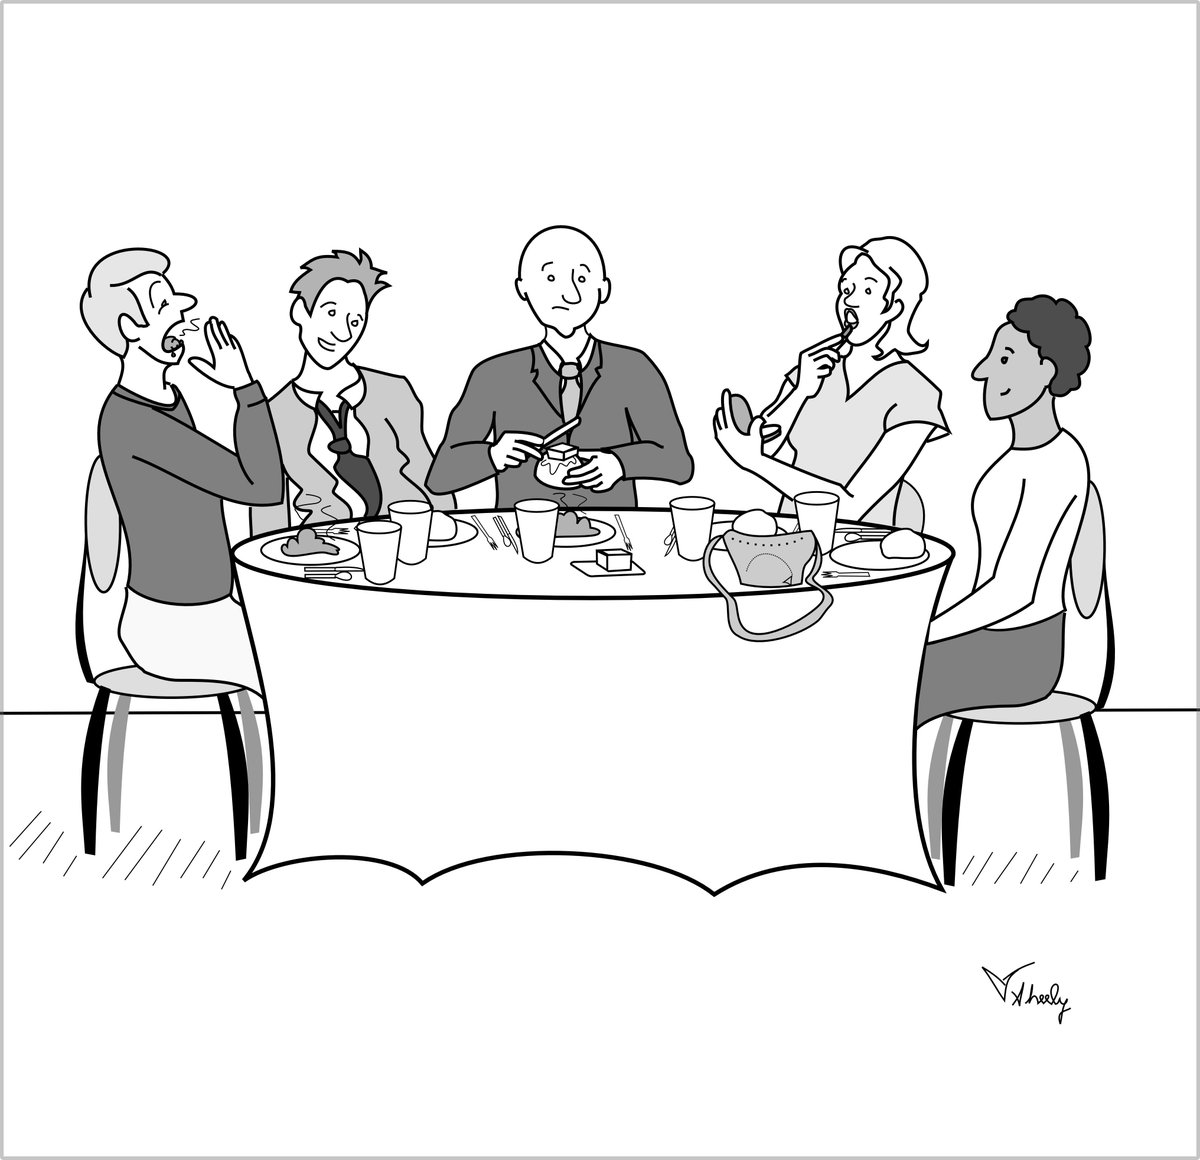 How not to be a jerky #dinnerguest: https://t.co/XenZBCUr5O #etiquette #socialskills https://t.co/tHvGujhP2i